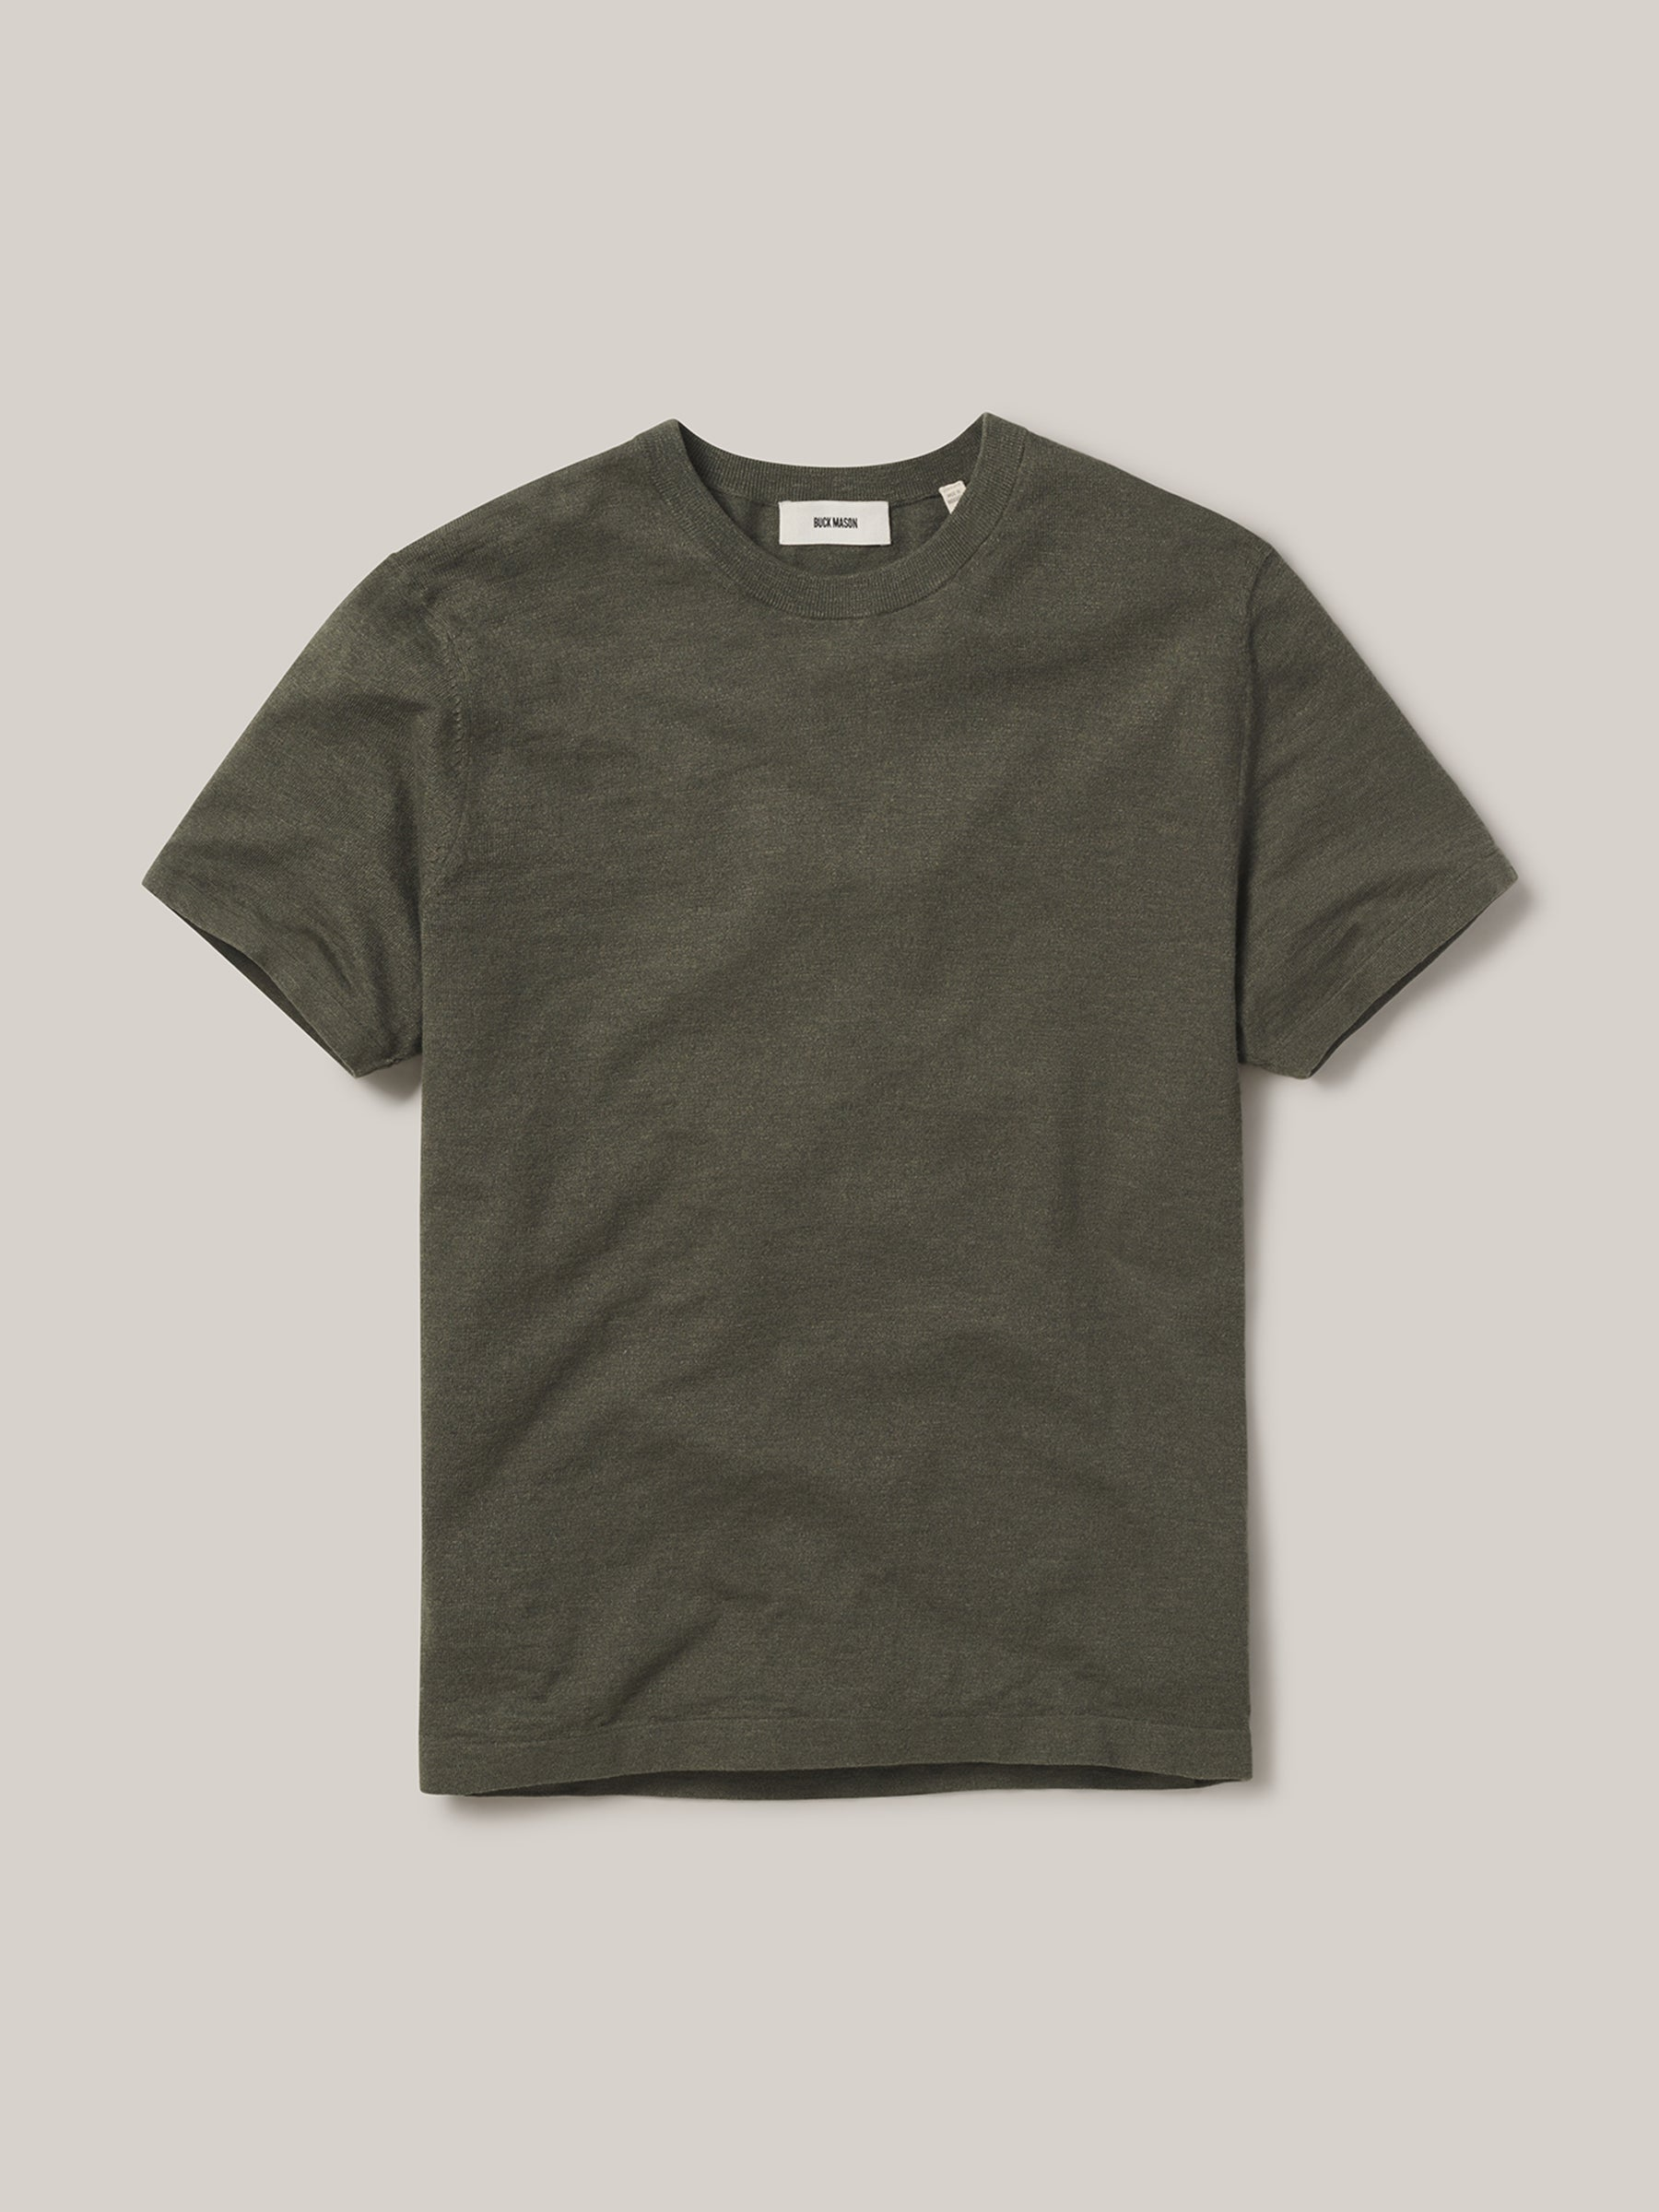 Drab Avalon Knit Classic Tee